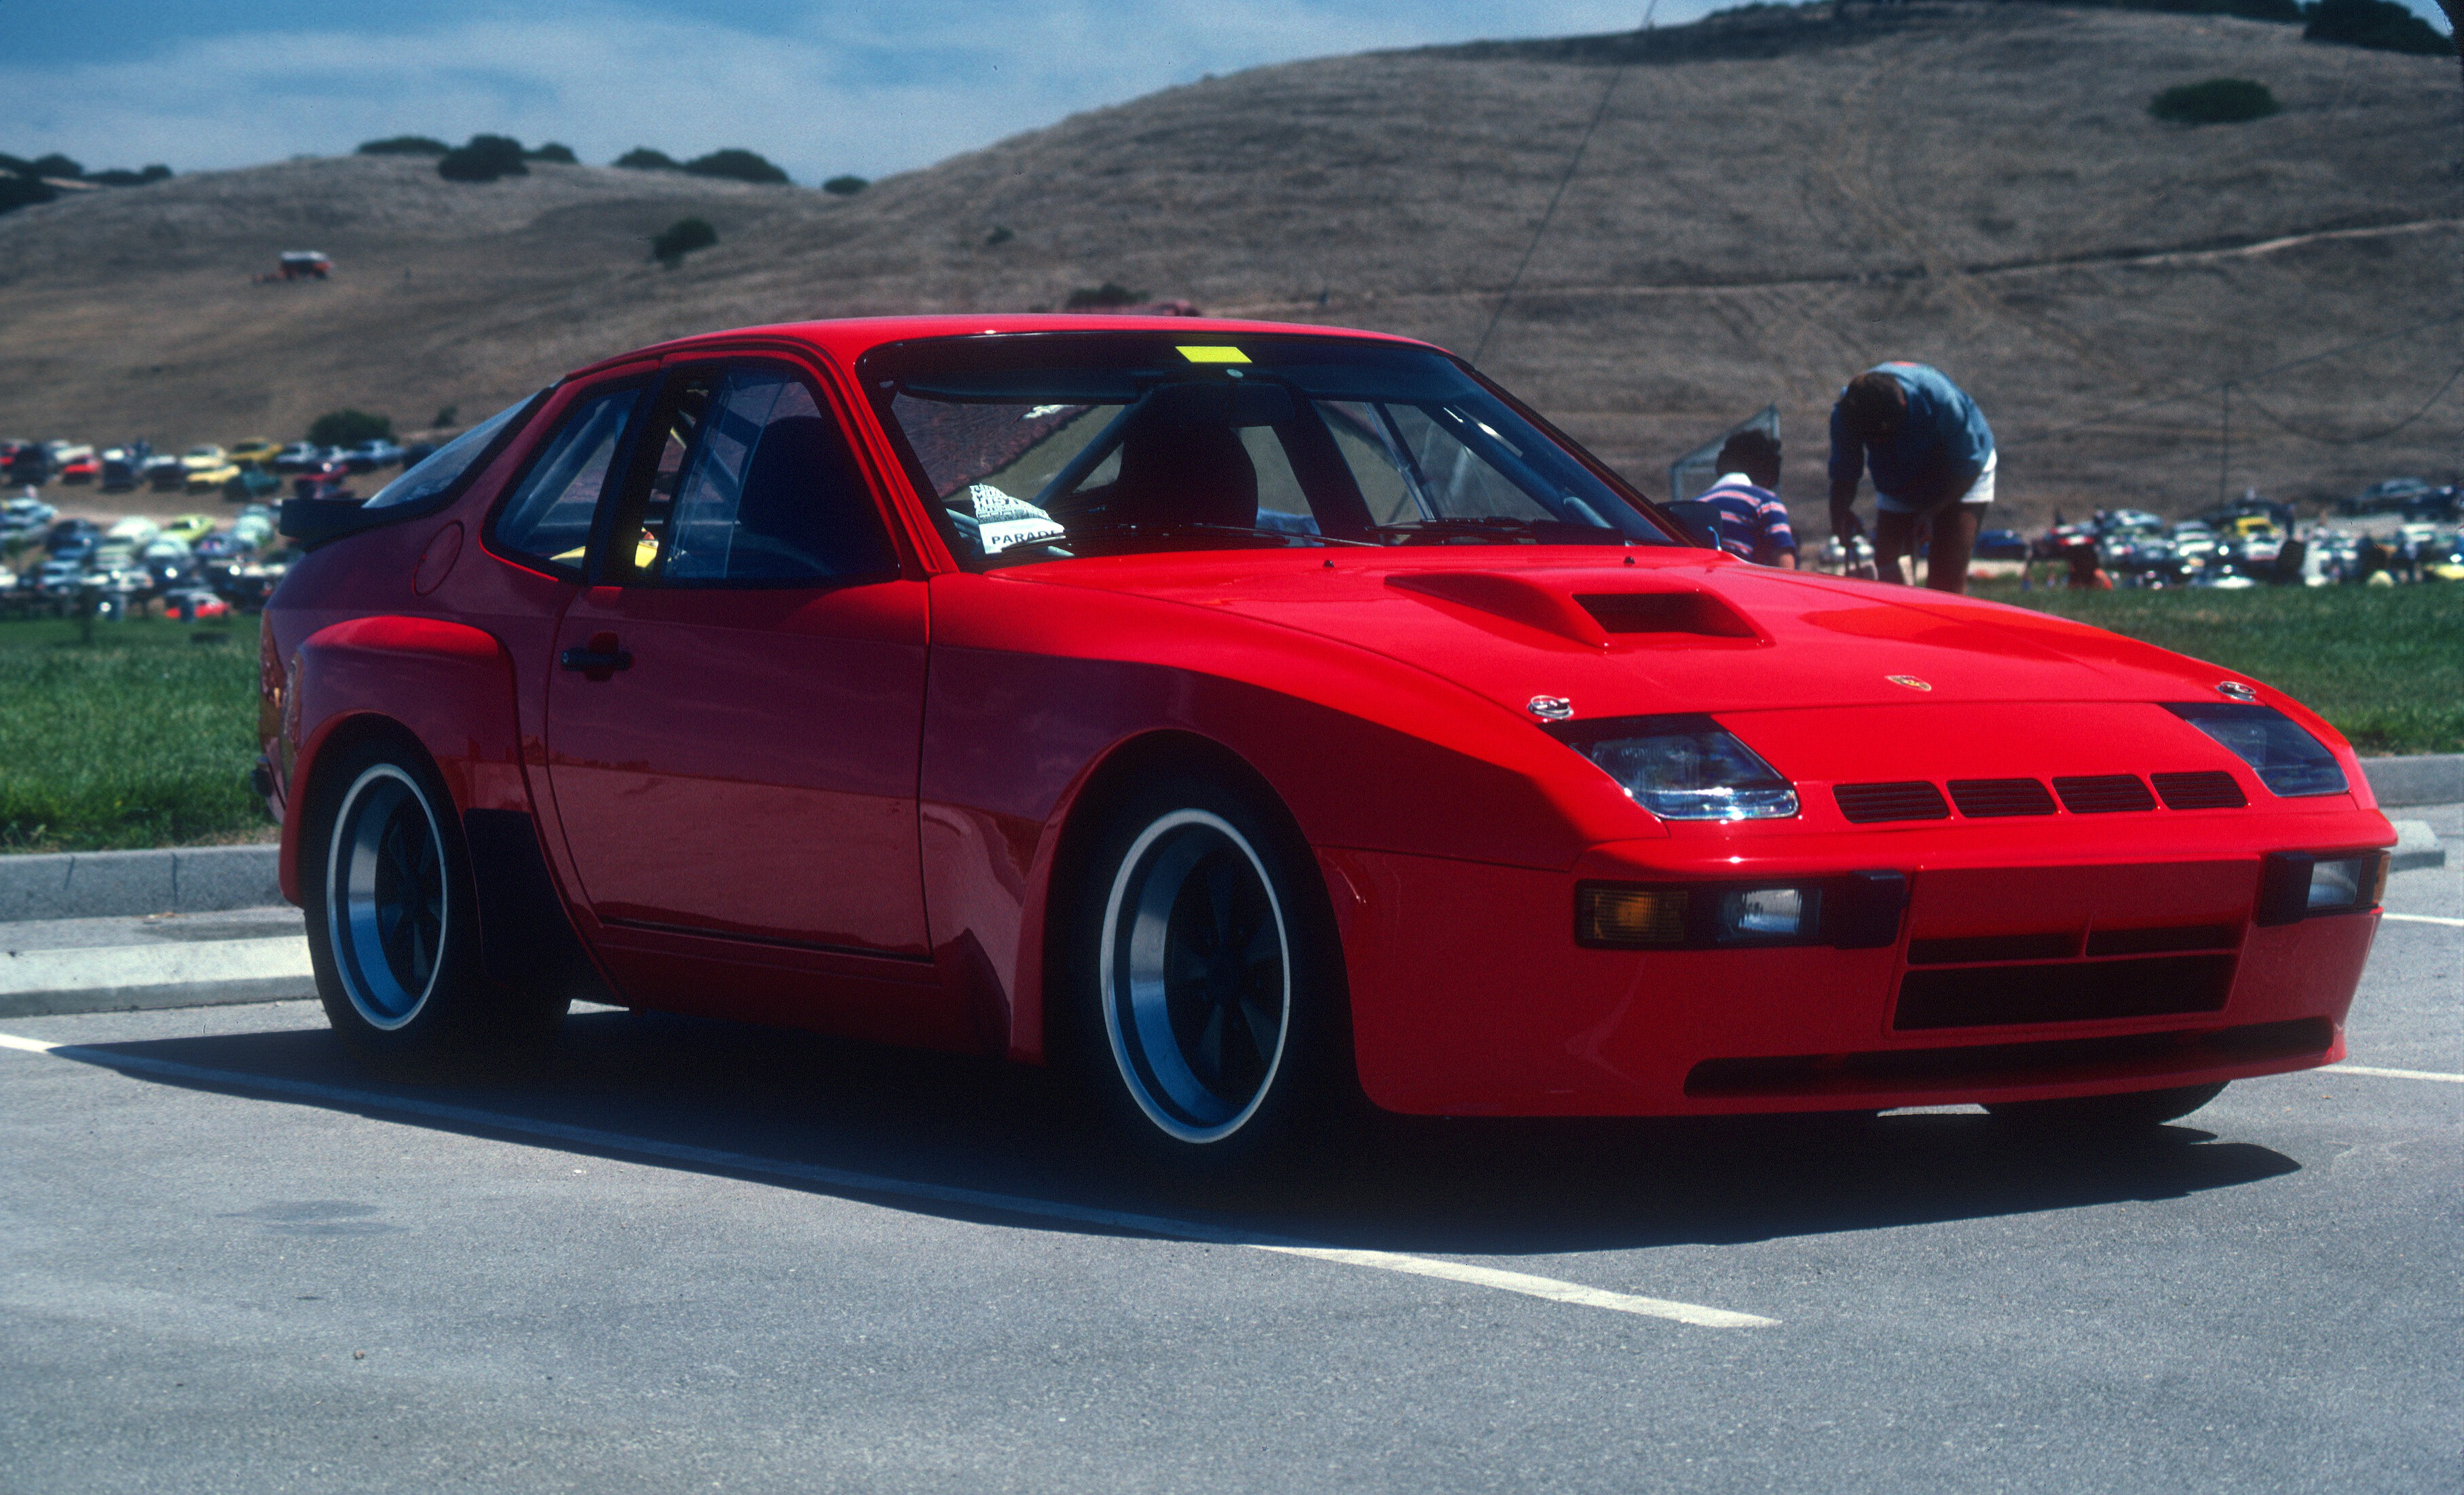 PORSCHE 924 CARRERA GTS red